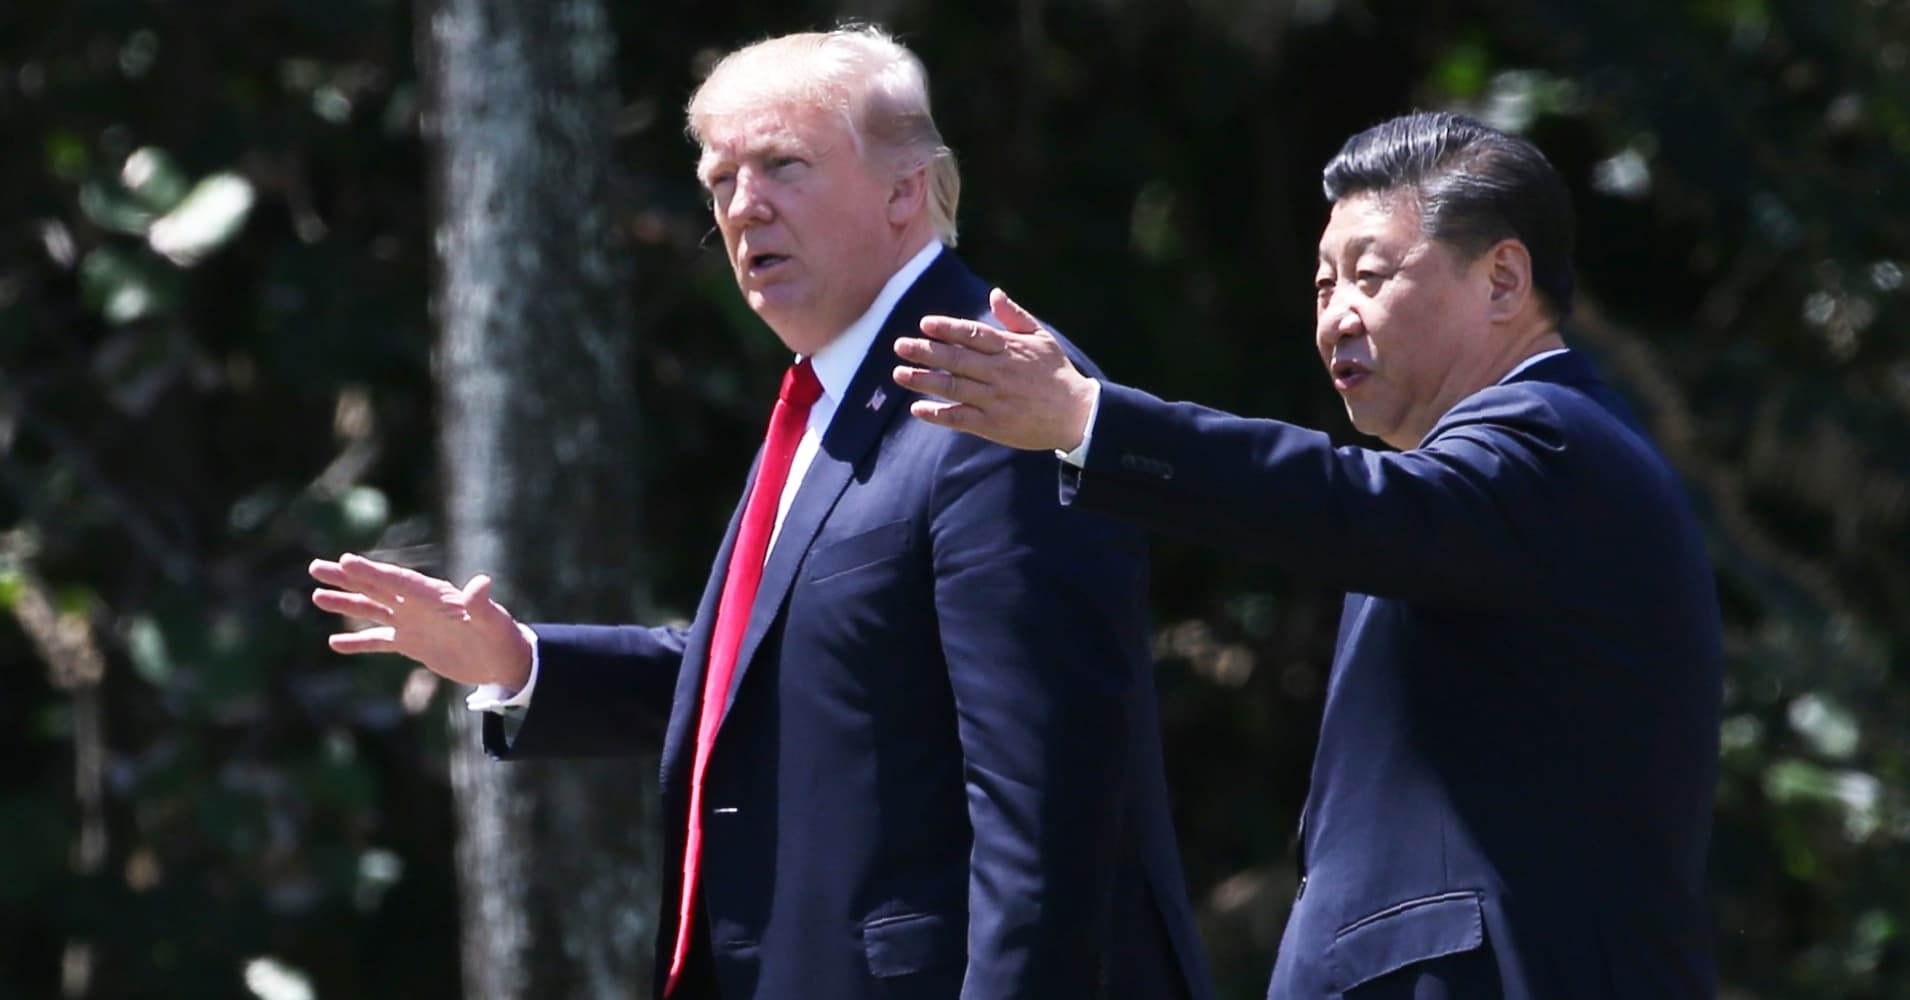 Trump says he believes China's Xi Jinping on trade tariff truce